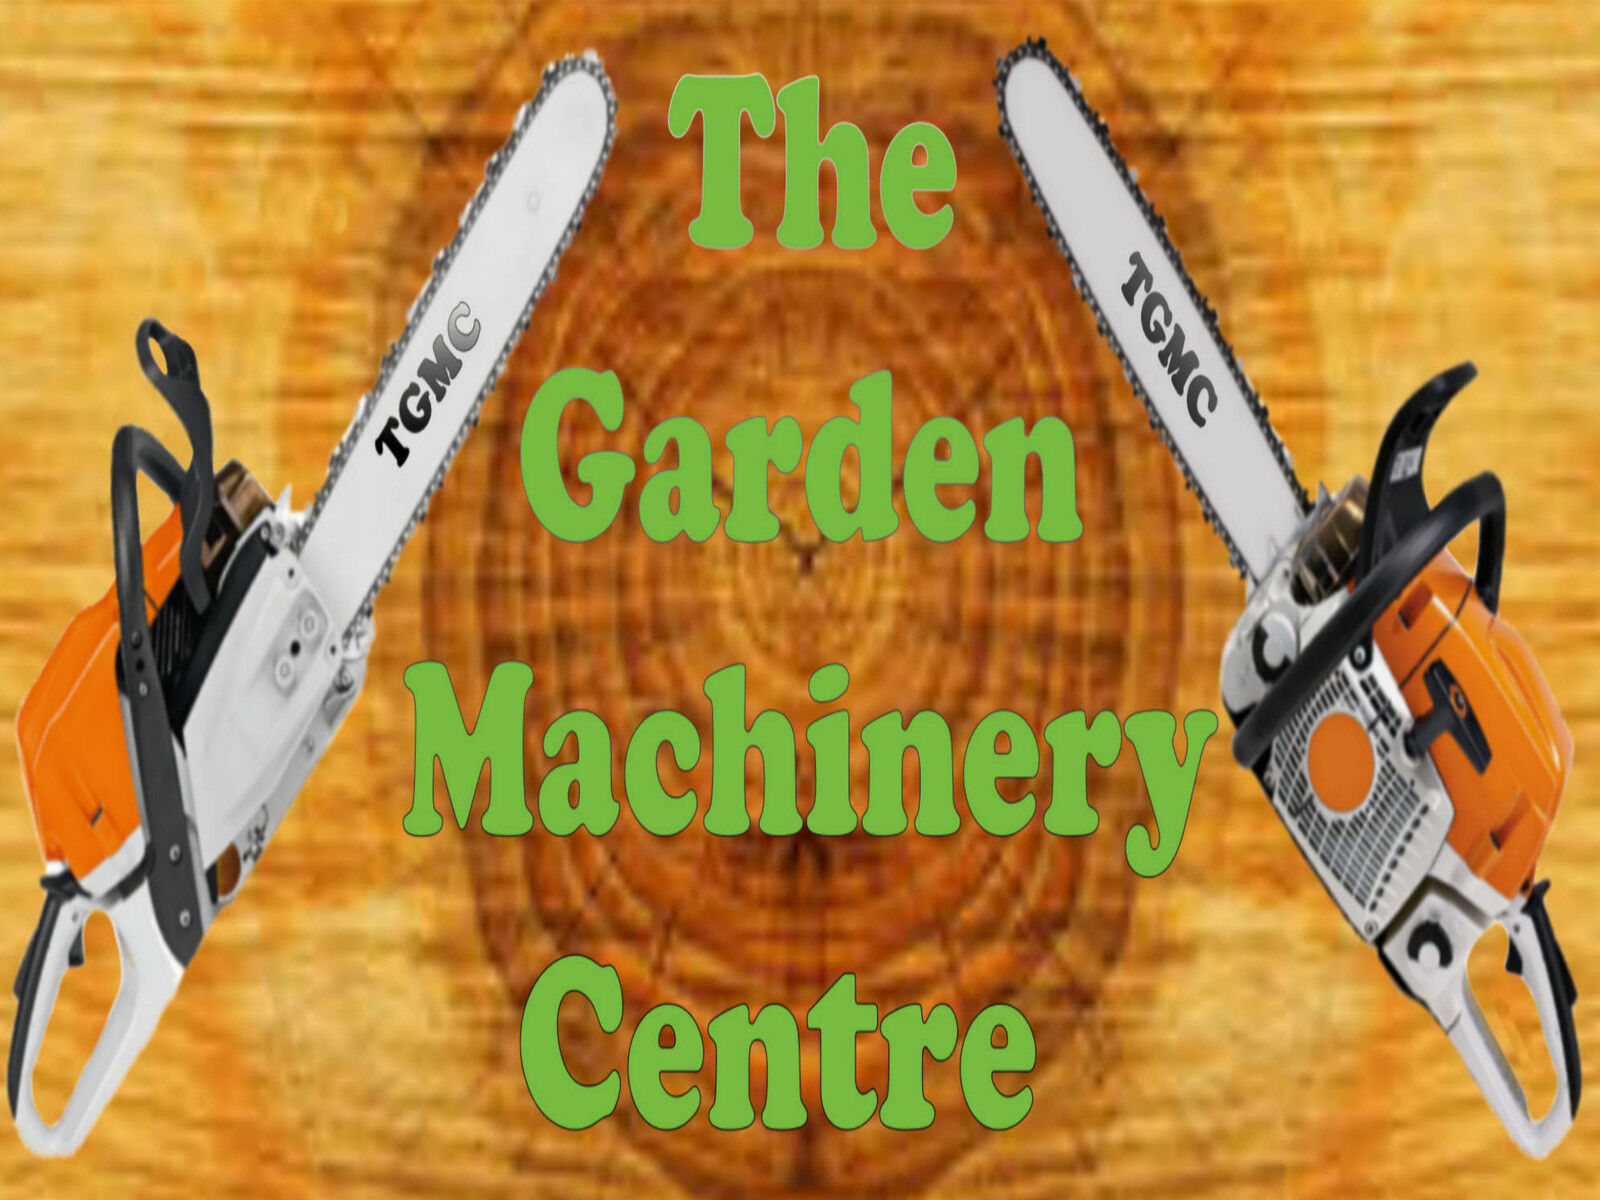 Items in The Garden Machinery Centre shop on eBay